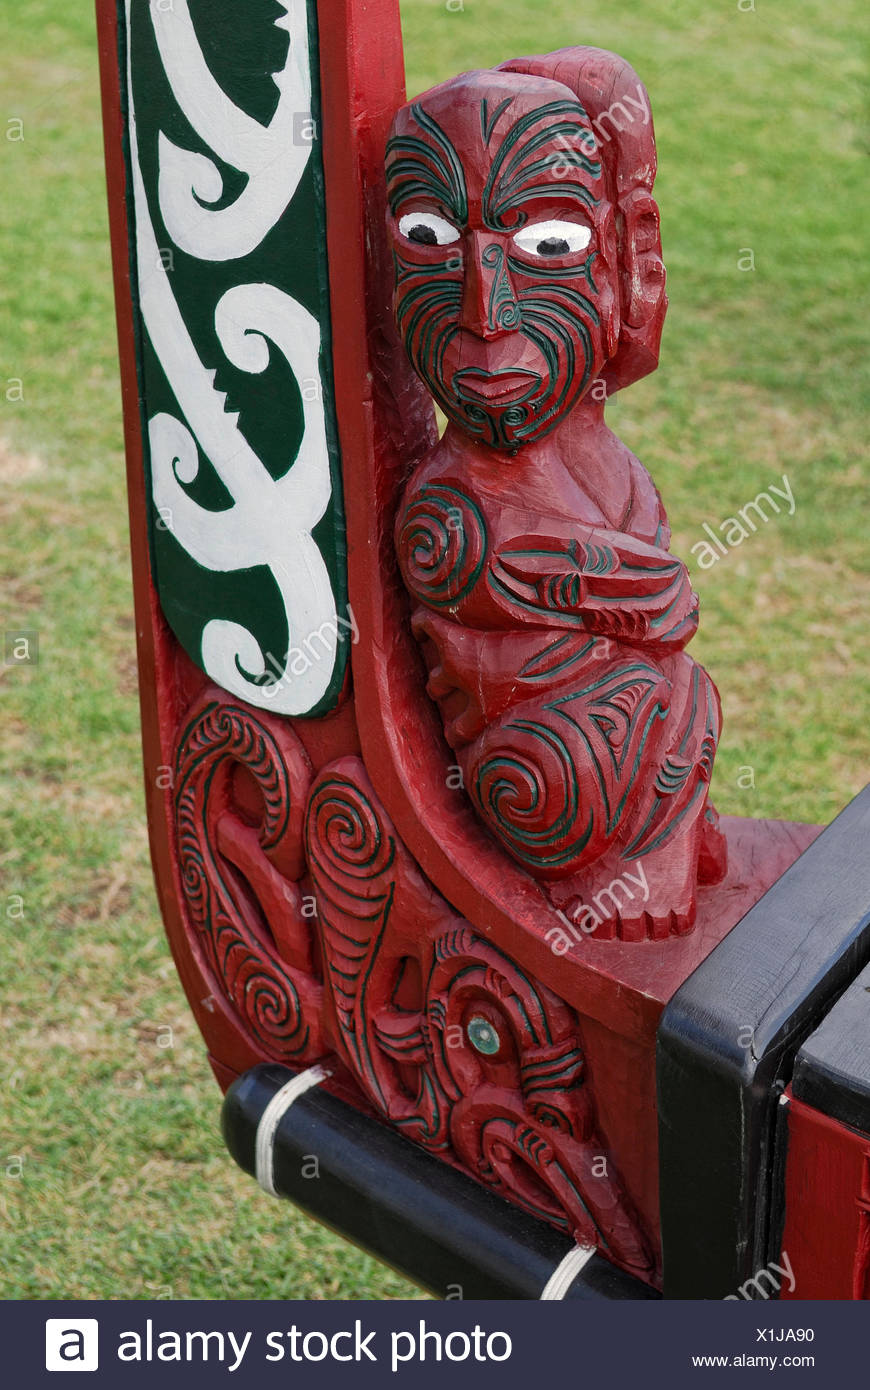 Waka, a Maori war canoe, replica from 1990, carved bow with figural representation and ornaments, Waitangi Treaty Grounds - Stock Image